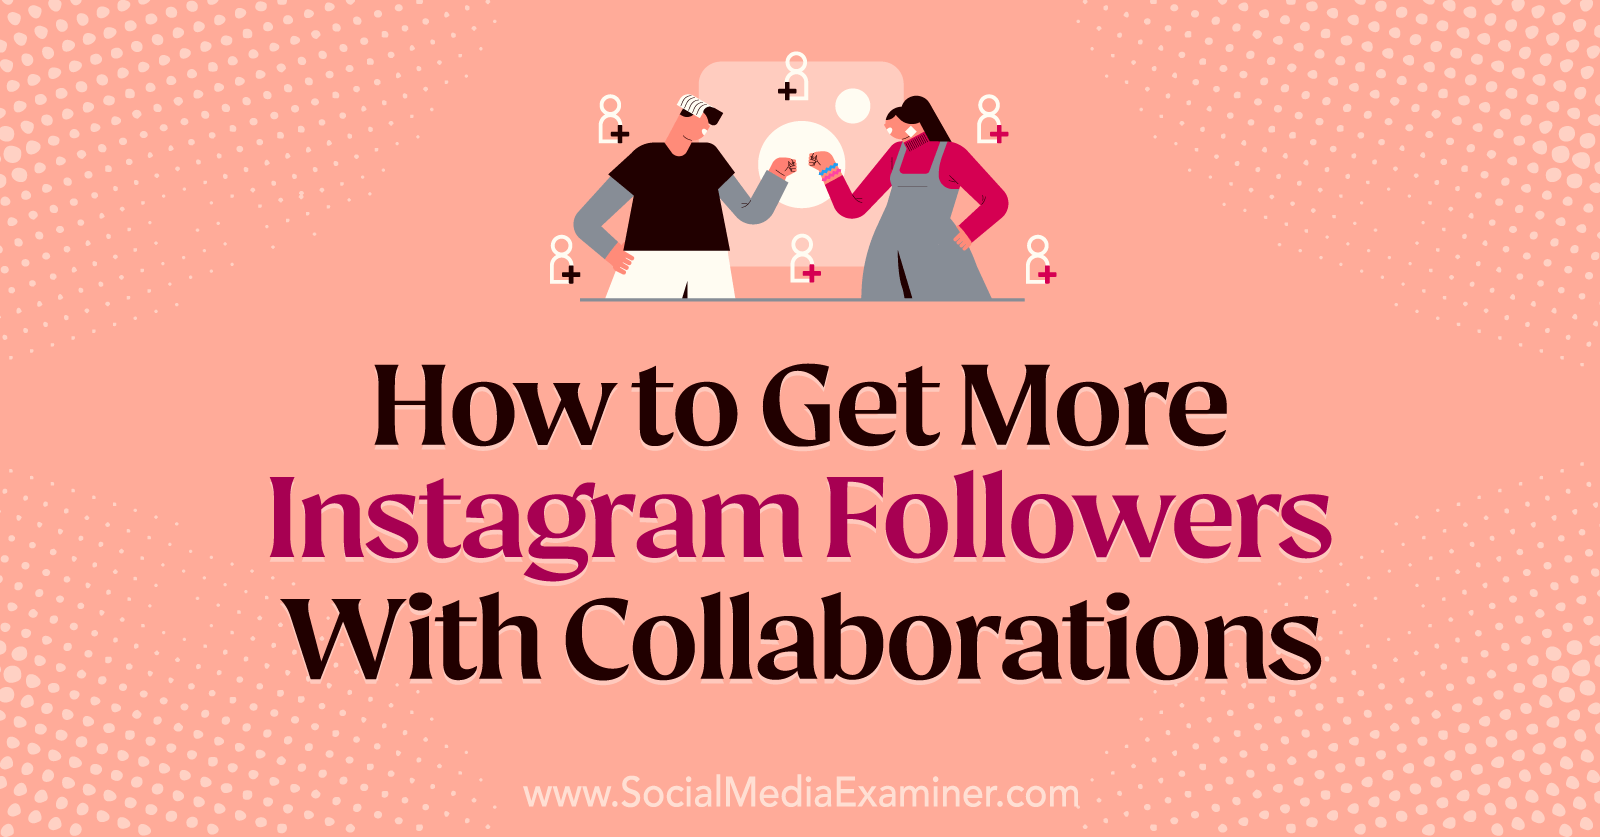 How to Get More Instagram Followers With Collaborations by Laura Moore on Social Media Examiner.